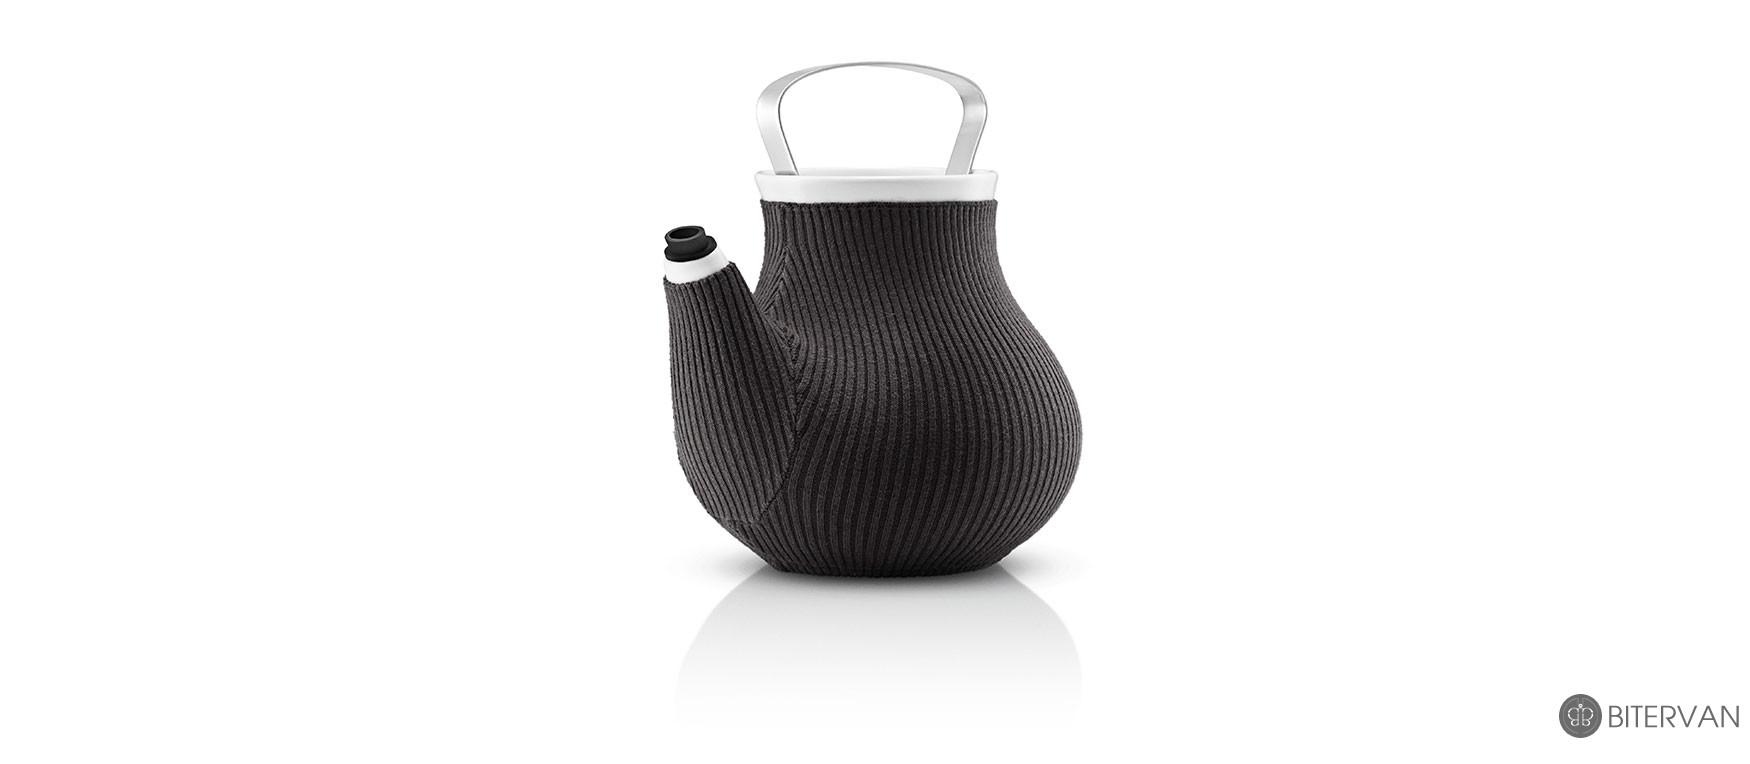 eva solo, my big tea teapot, elephant grey, 1.5 l